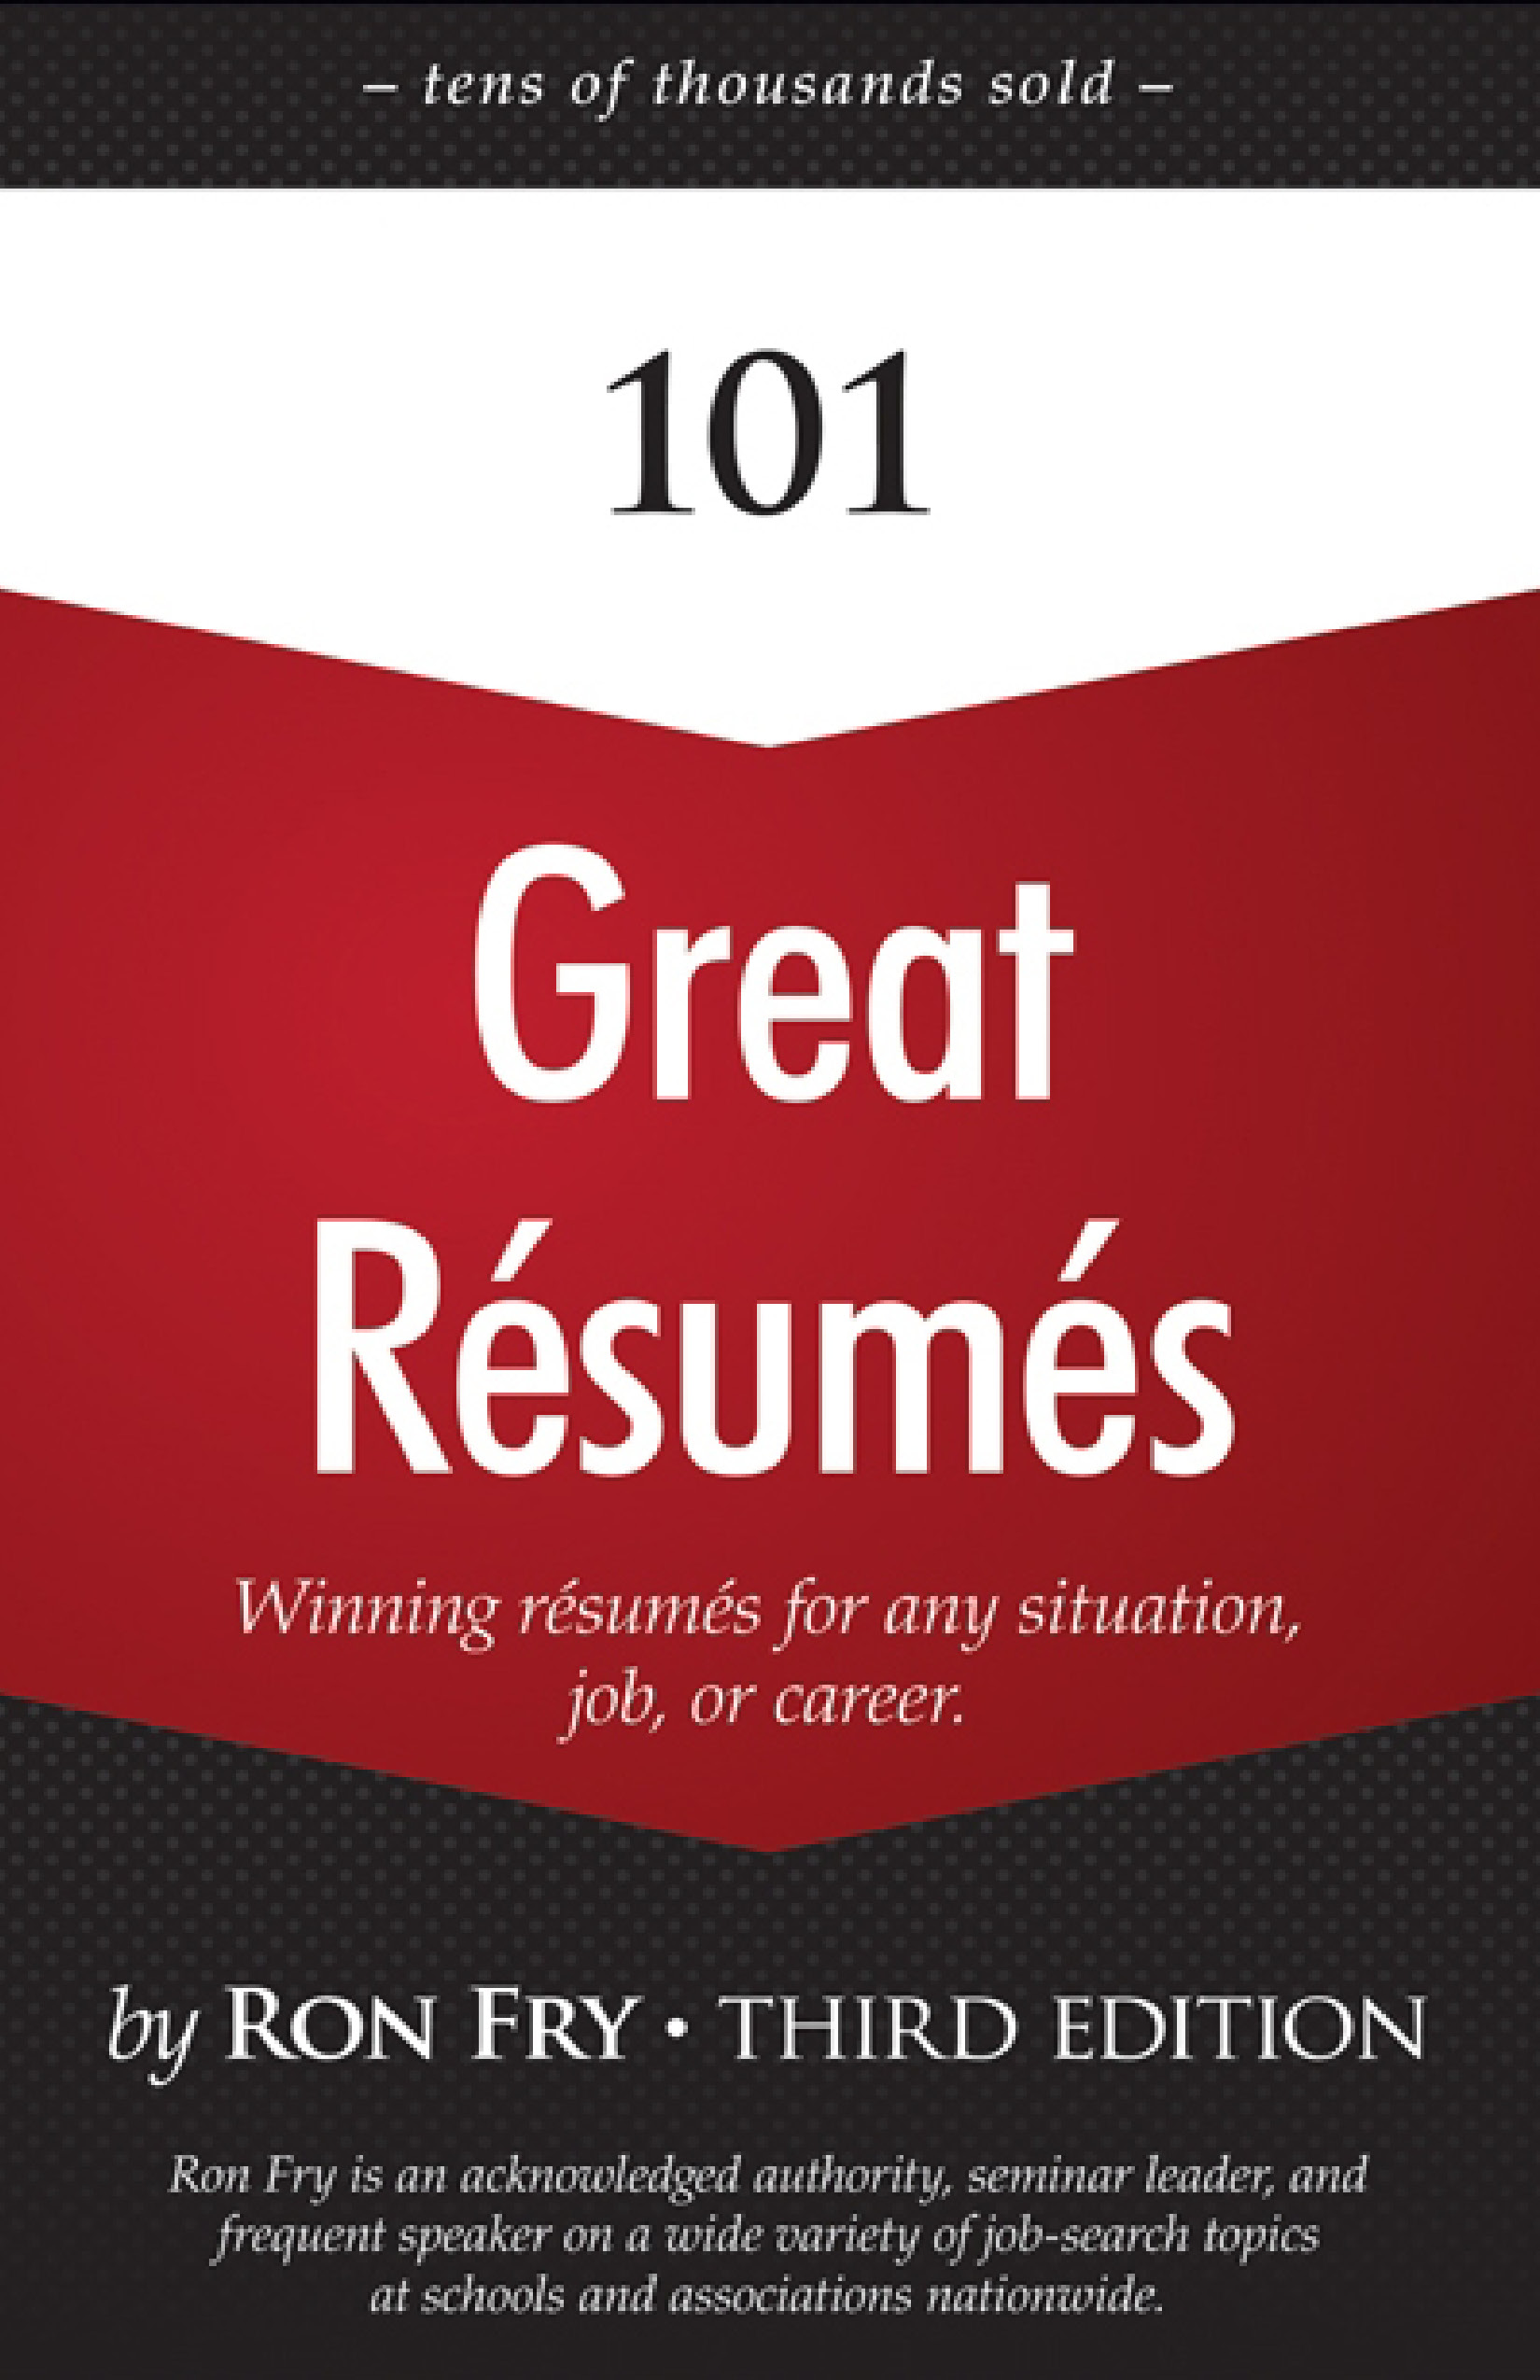 101 Great Résumés Winning Résumés for Any Situation, Job, or Career (Third Edition)